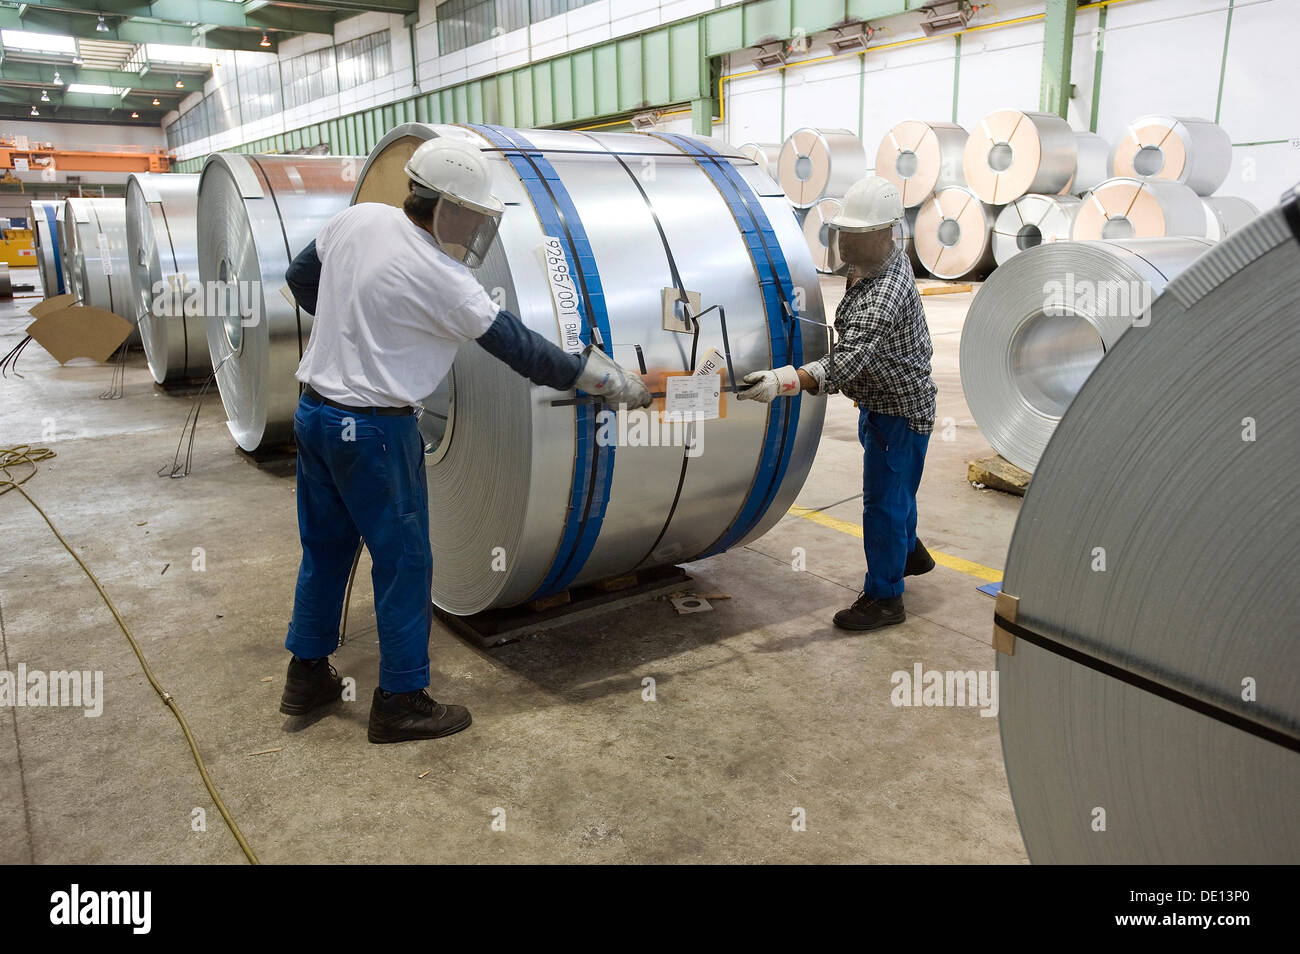 Packaging of galvanised or zinc-coated sheet metal wound into coils for the automotive industry, galvanising line - Stock Image